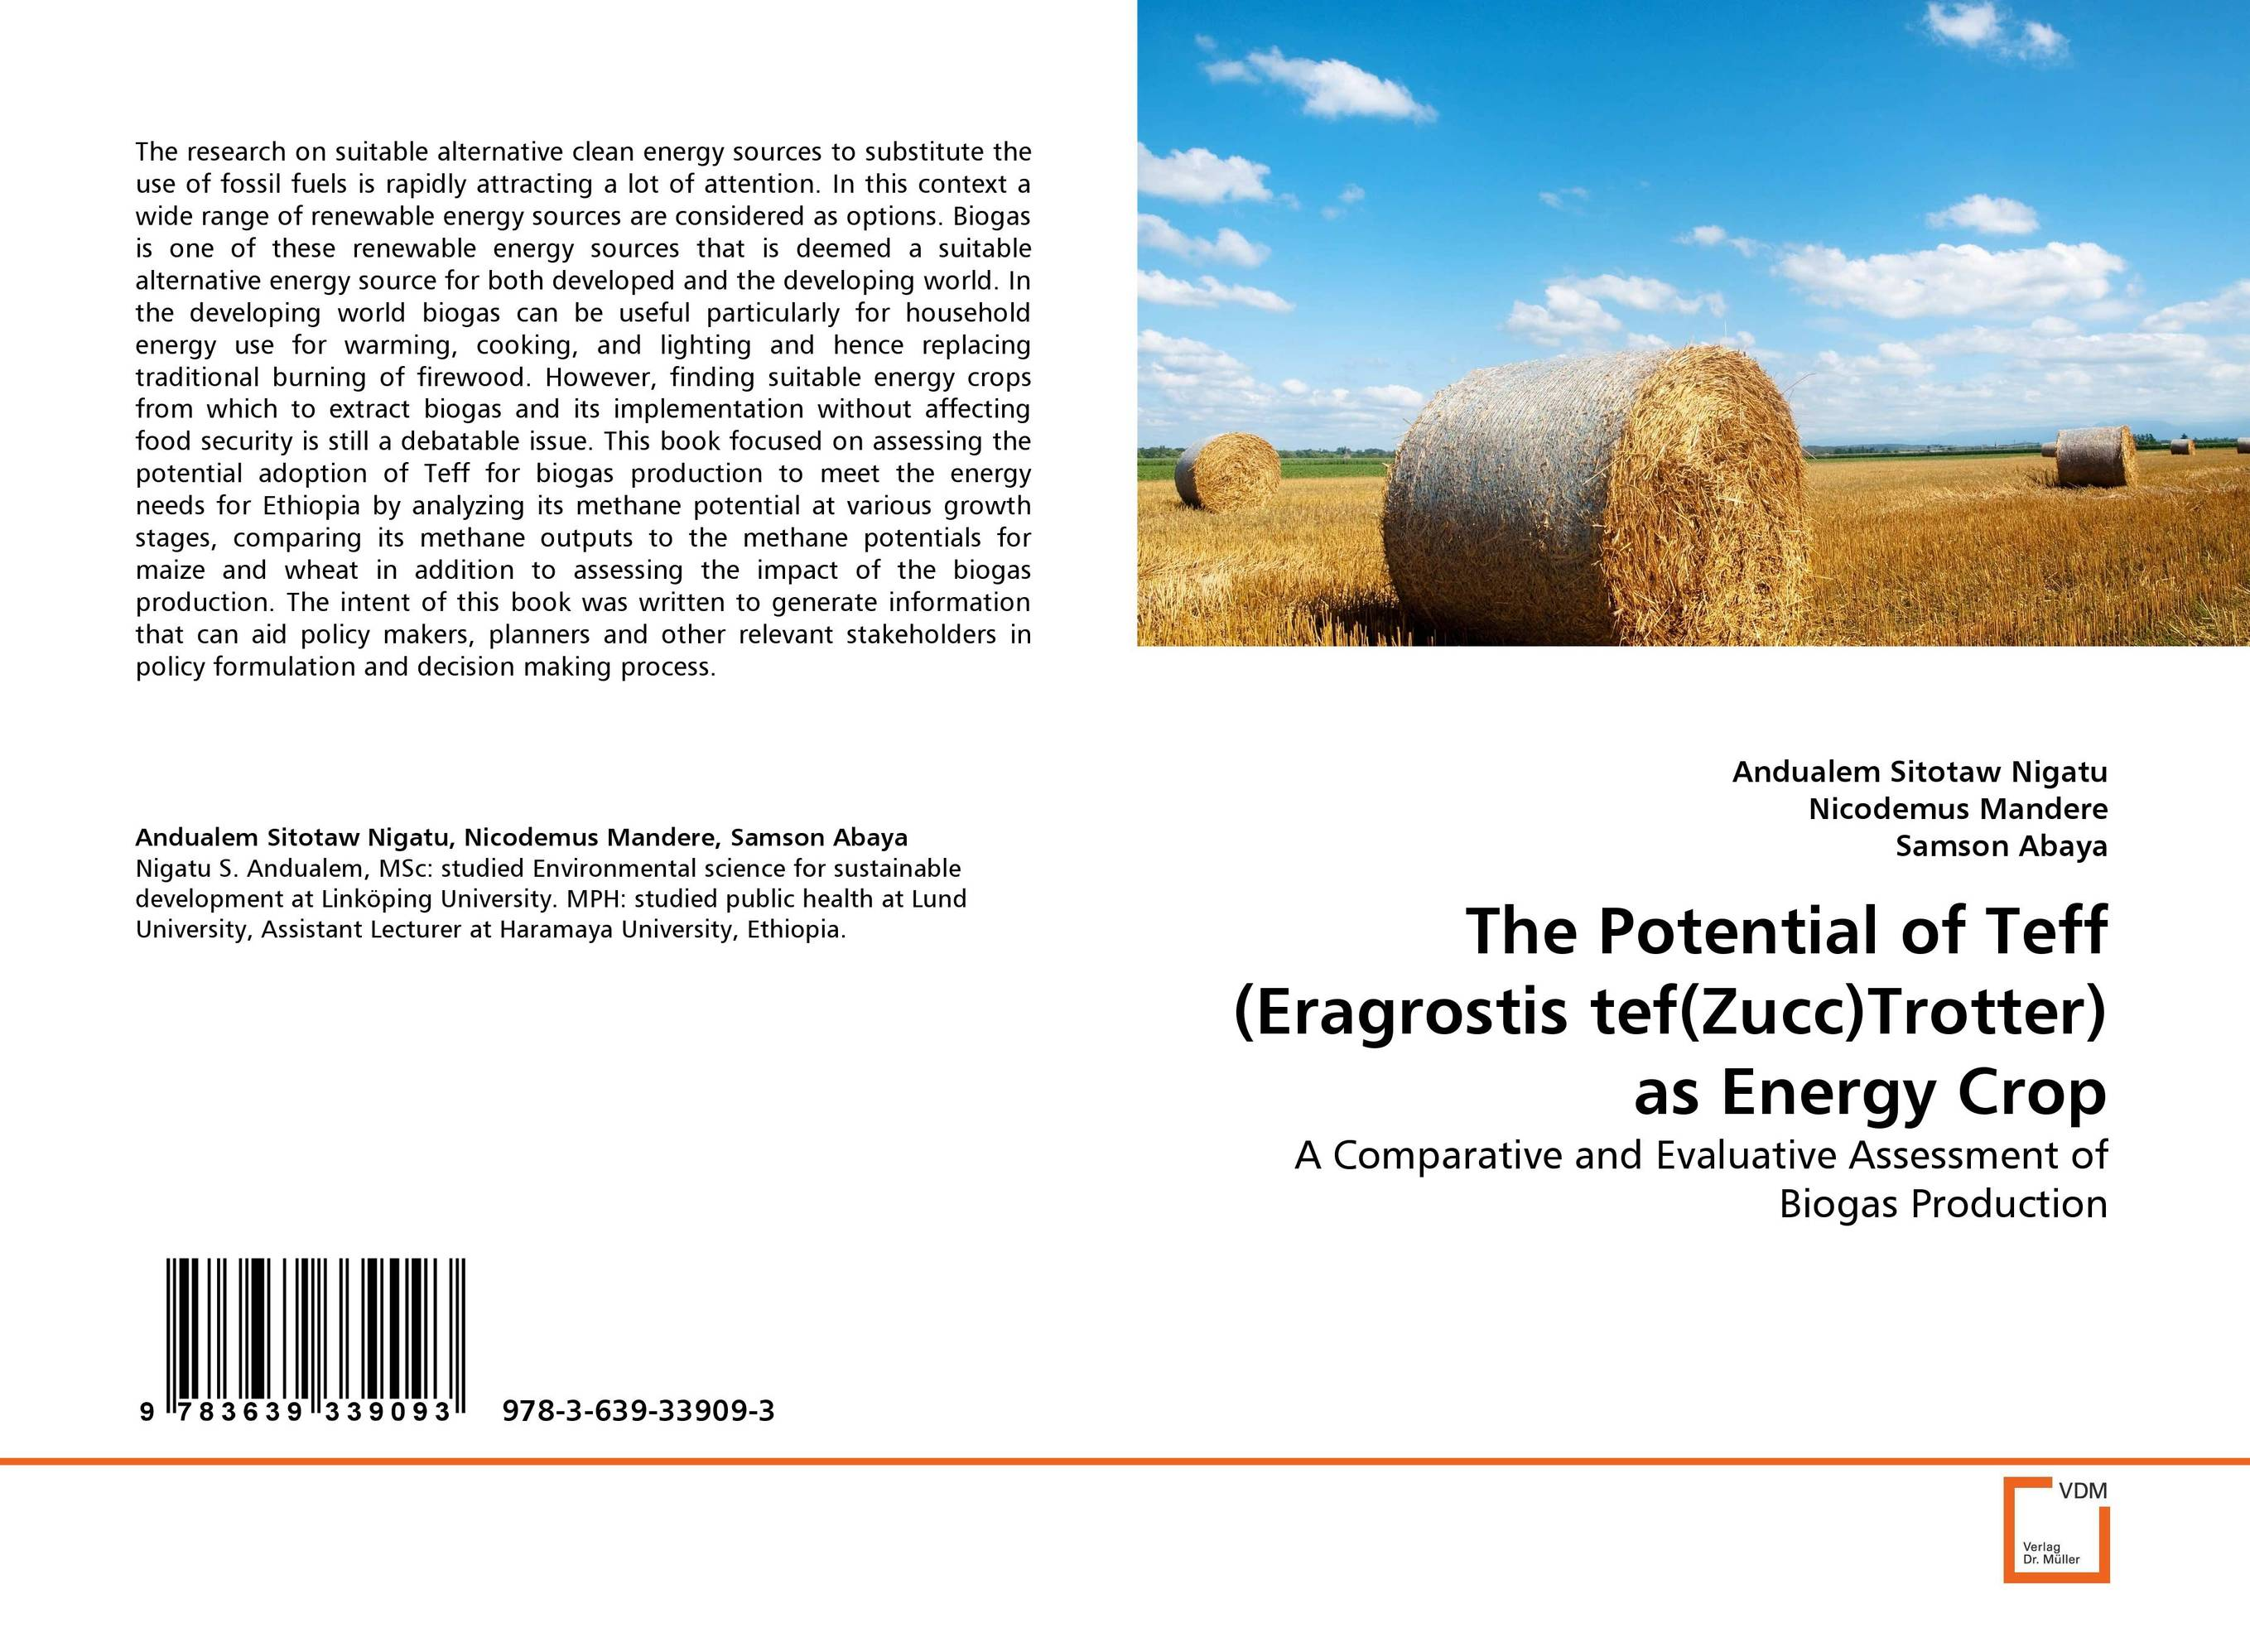 The Potential of Teff (Eragrostis tef(Zucc)Trotter) as Energy Crop assessing the economic aspects of biogas plants